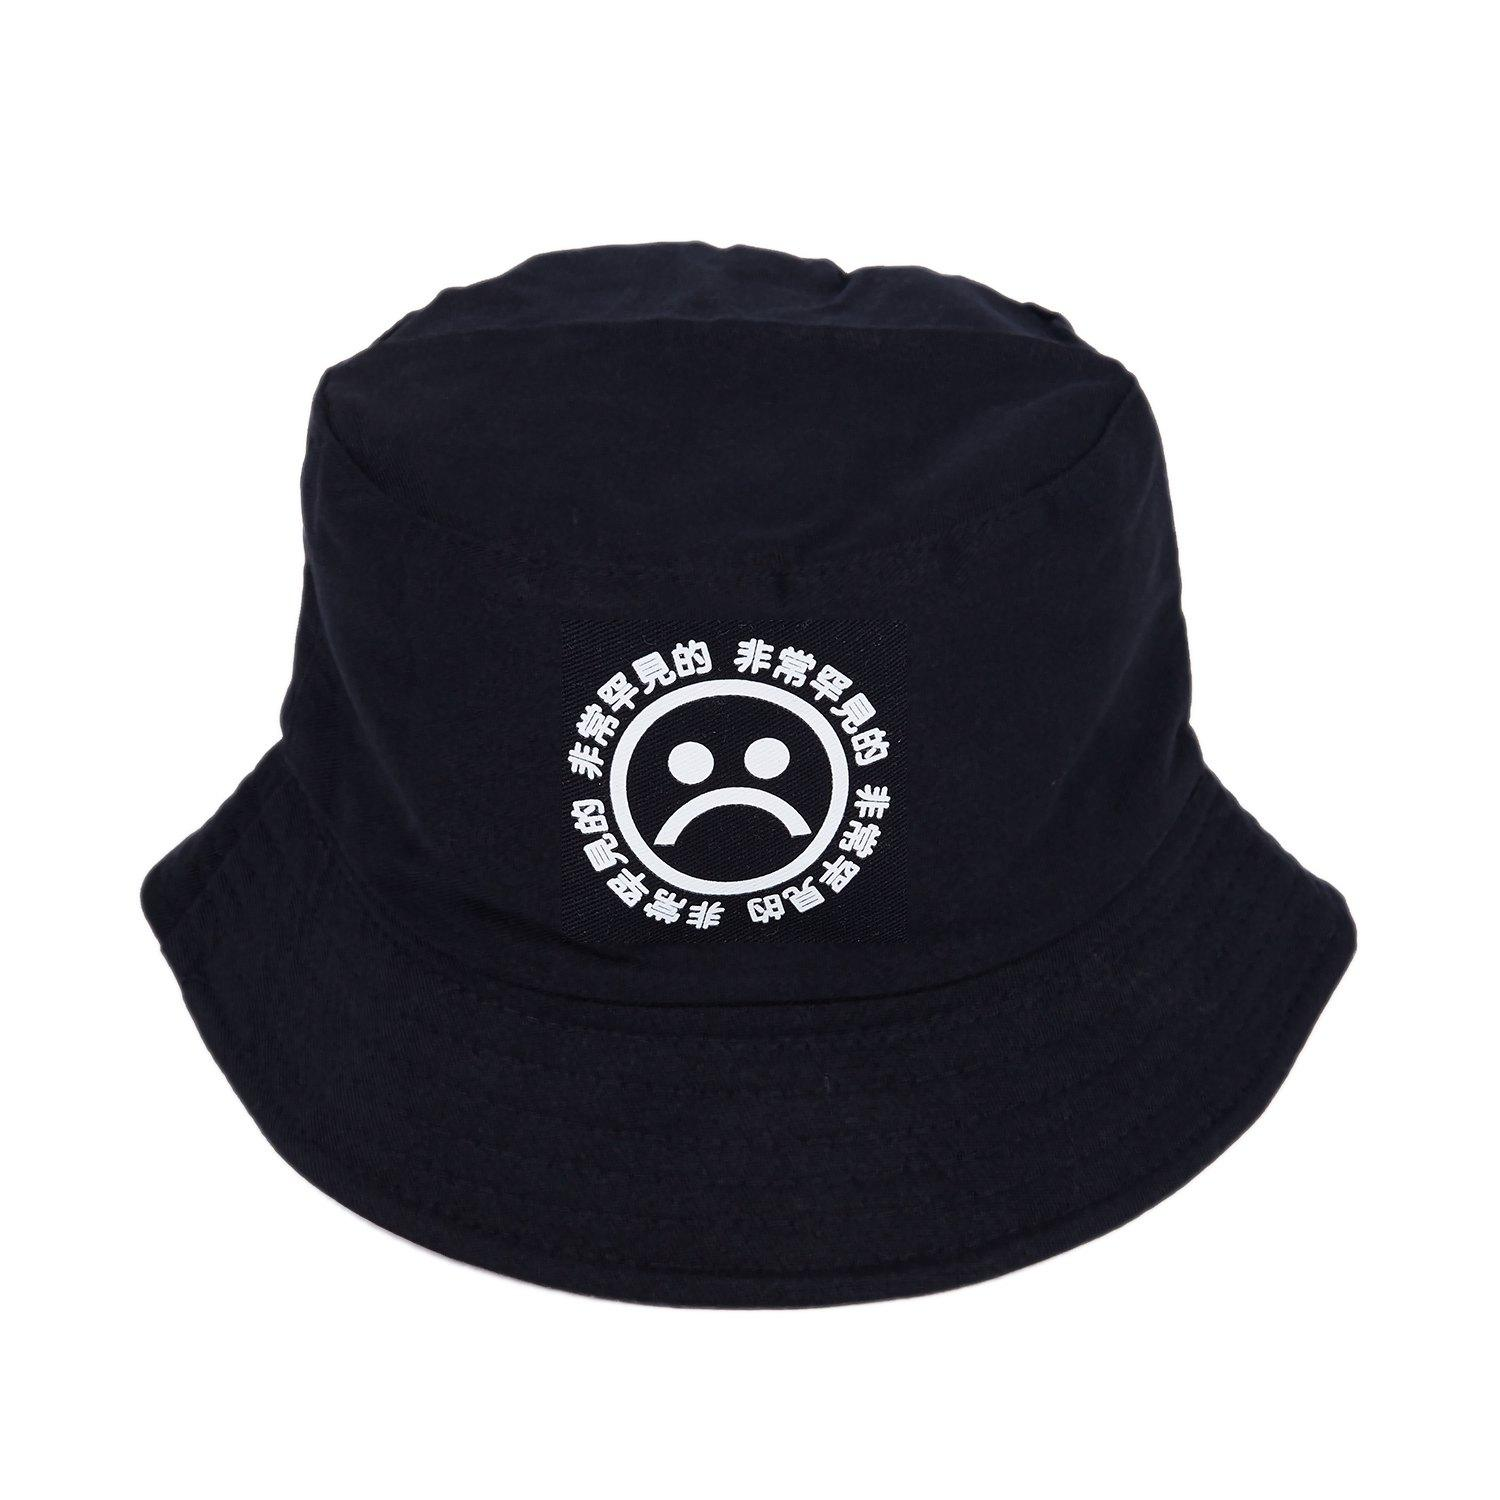 Men Sad Boys Bucket Hat Festival Accessory